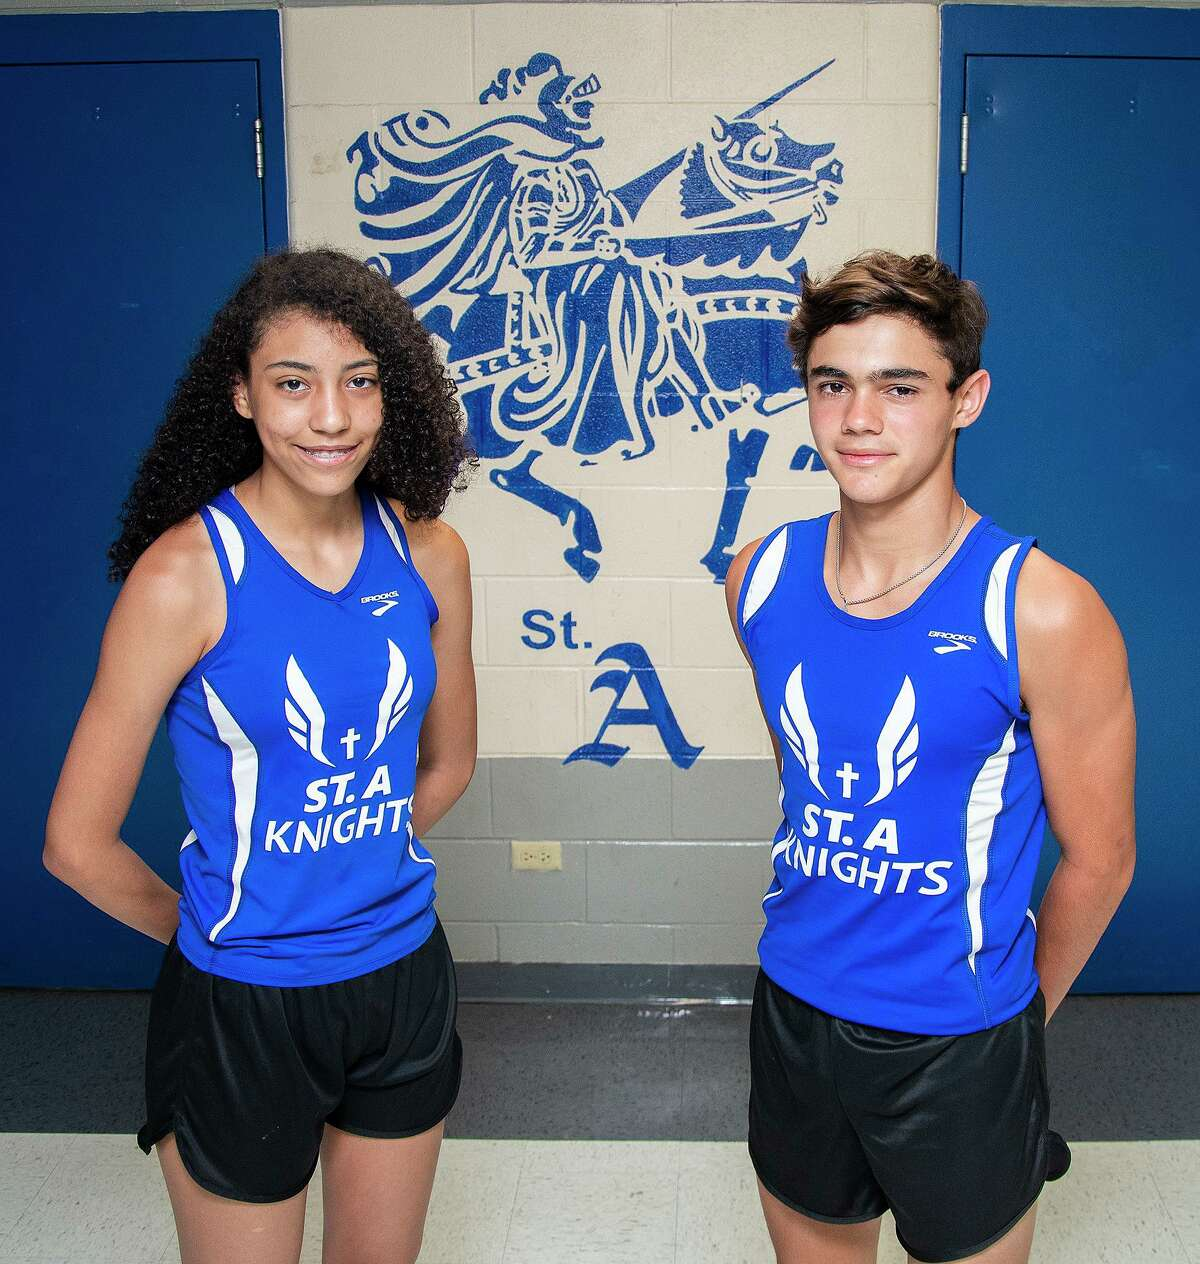 Arianna Ledet and Efran Melendez will represent St. Augustine at the TAPPS Track and Field regional meet on Thursday.